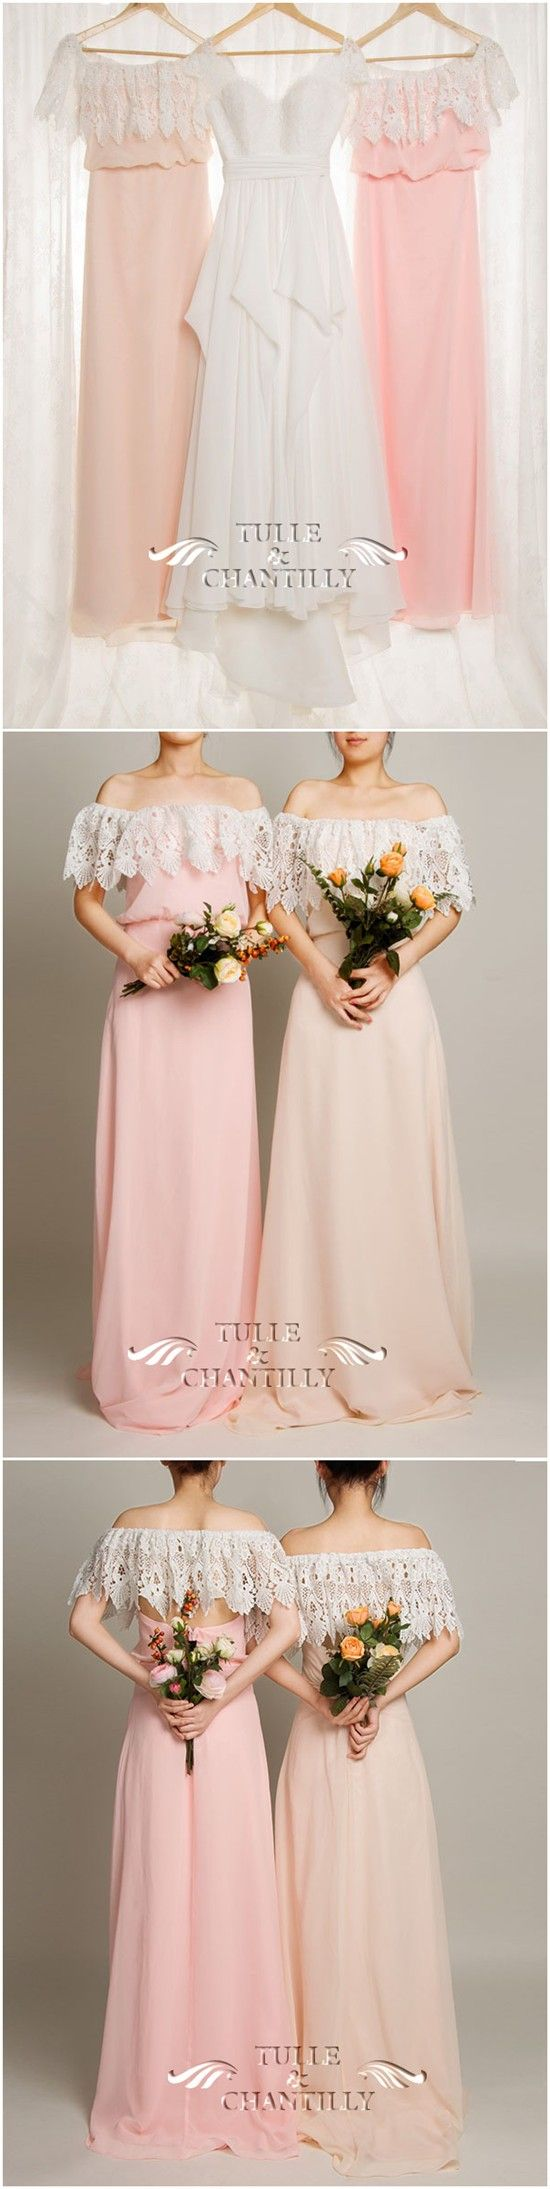 PASTEL WEDDING IDEAS - Bohemian 3 in 1 Dusty Pink Lace Covered Backless Bridesmaid Dress